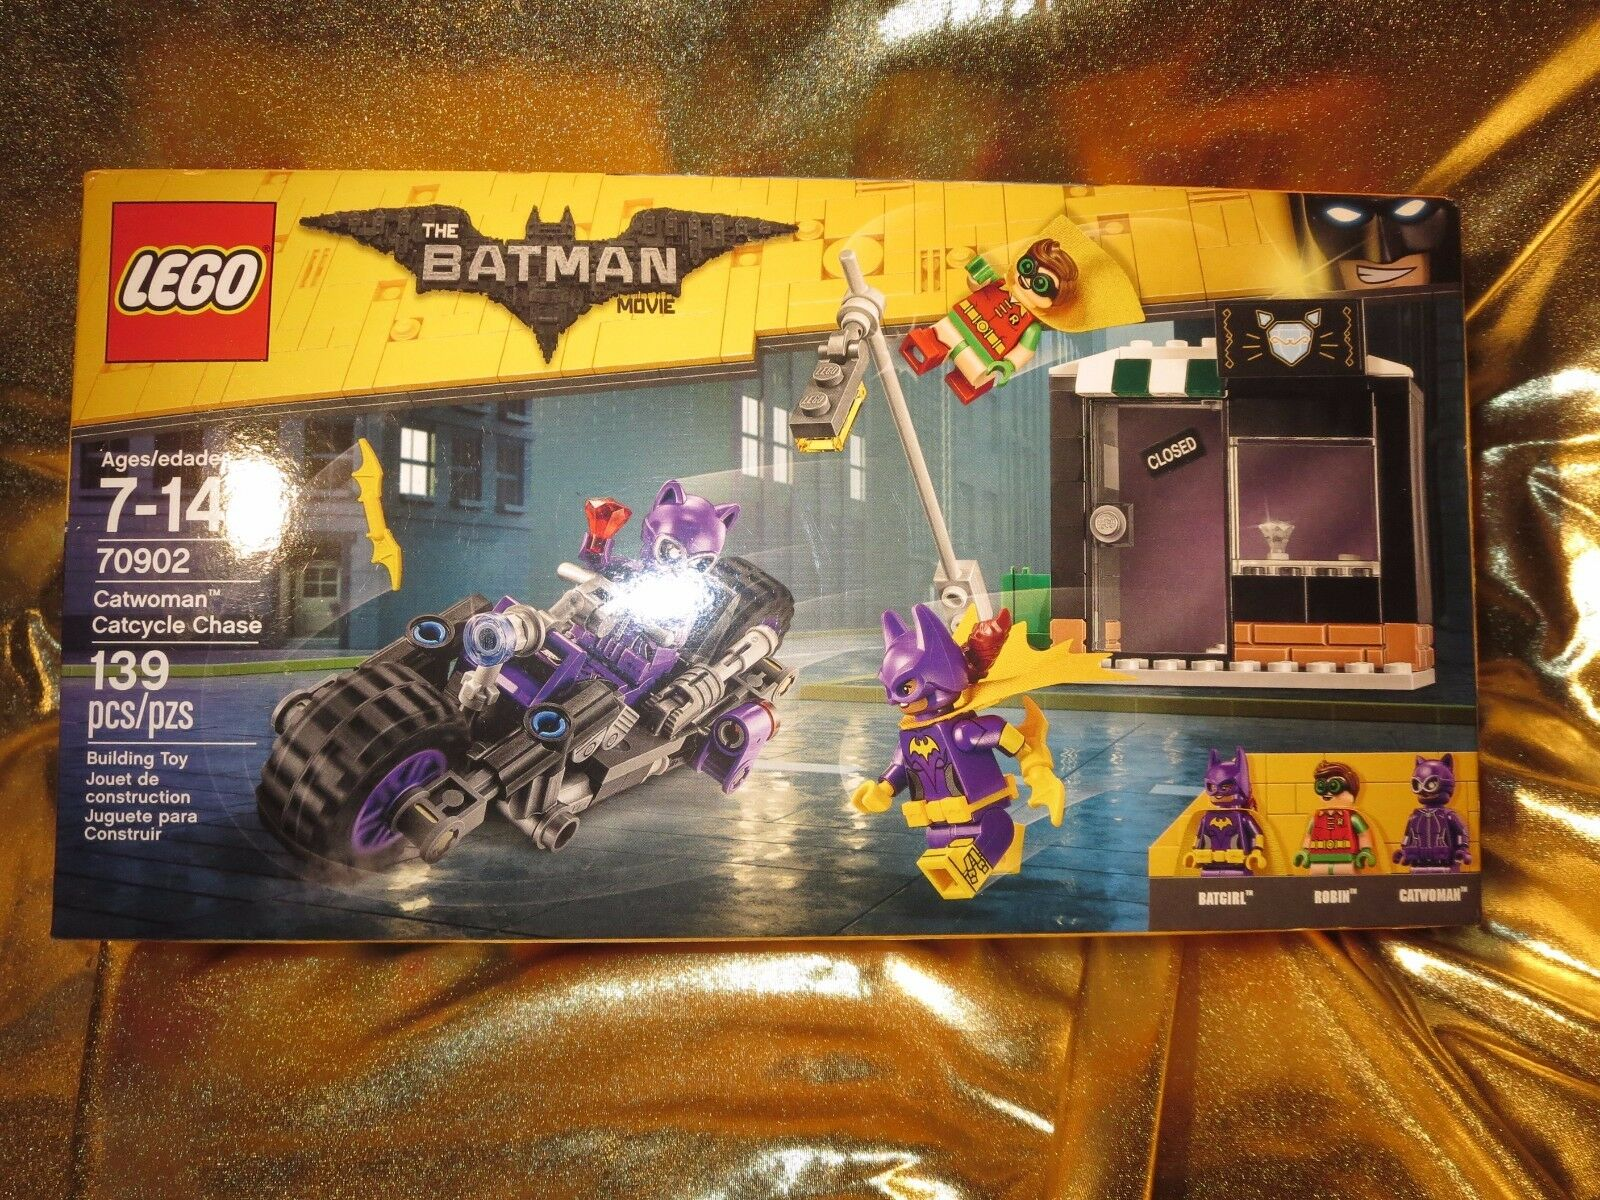 Catwoman Catcycle Chase The Batman Film Lego Set 137 Pièces Neuves 70902